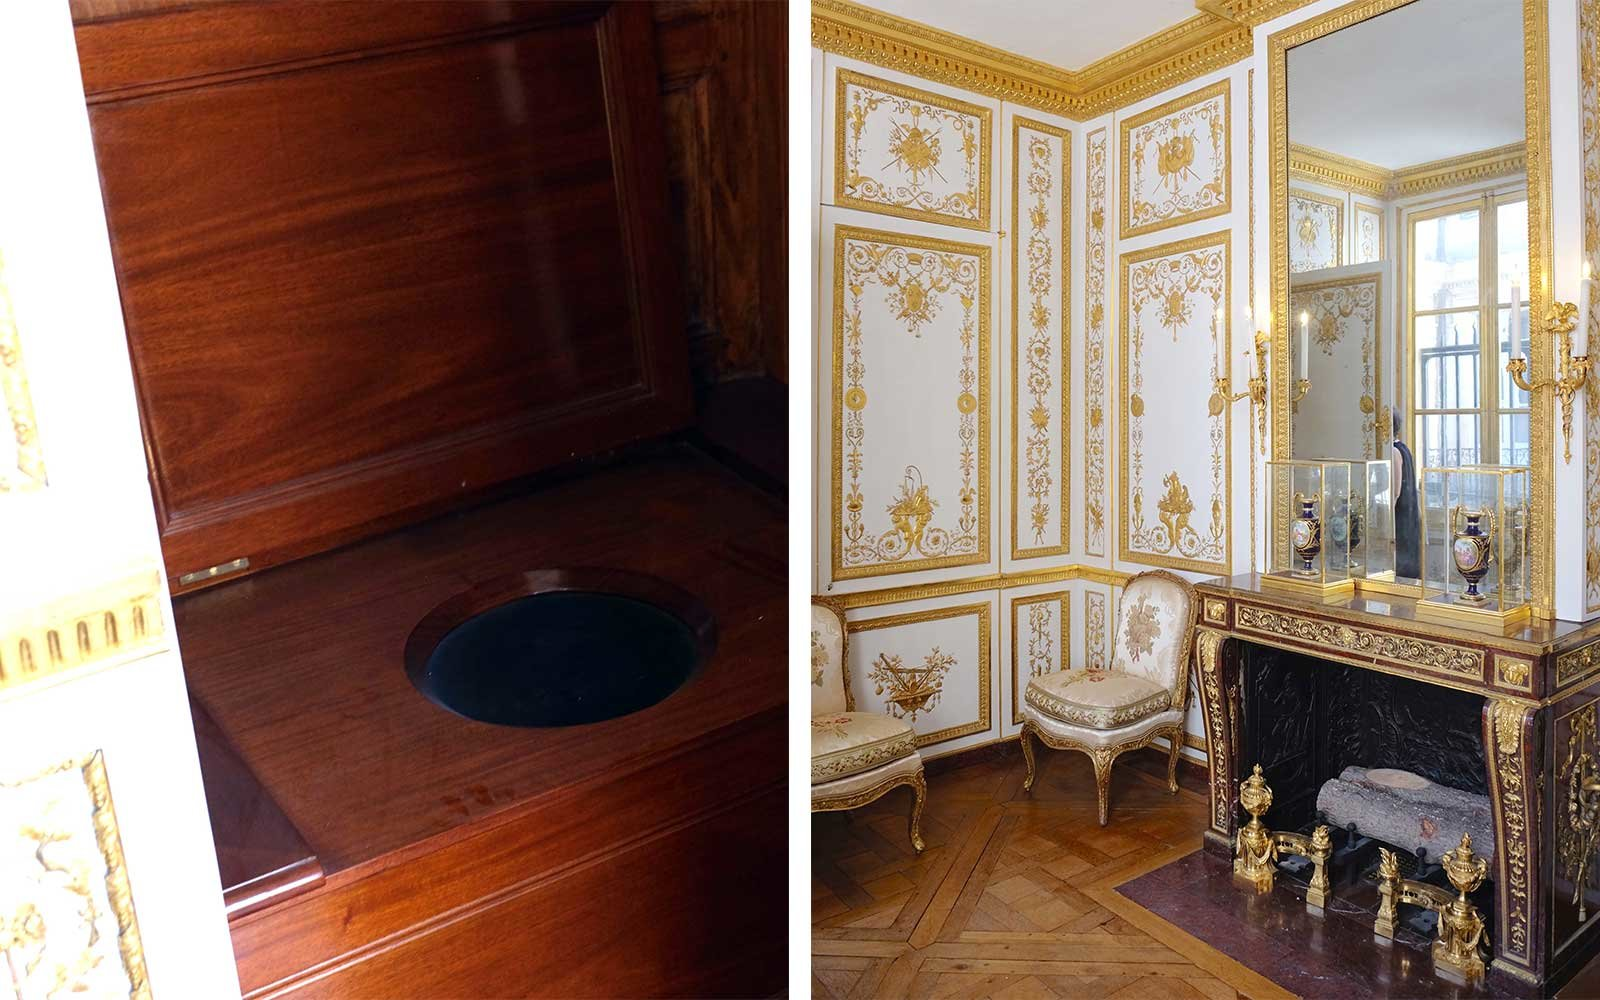 The King's Water Closet